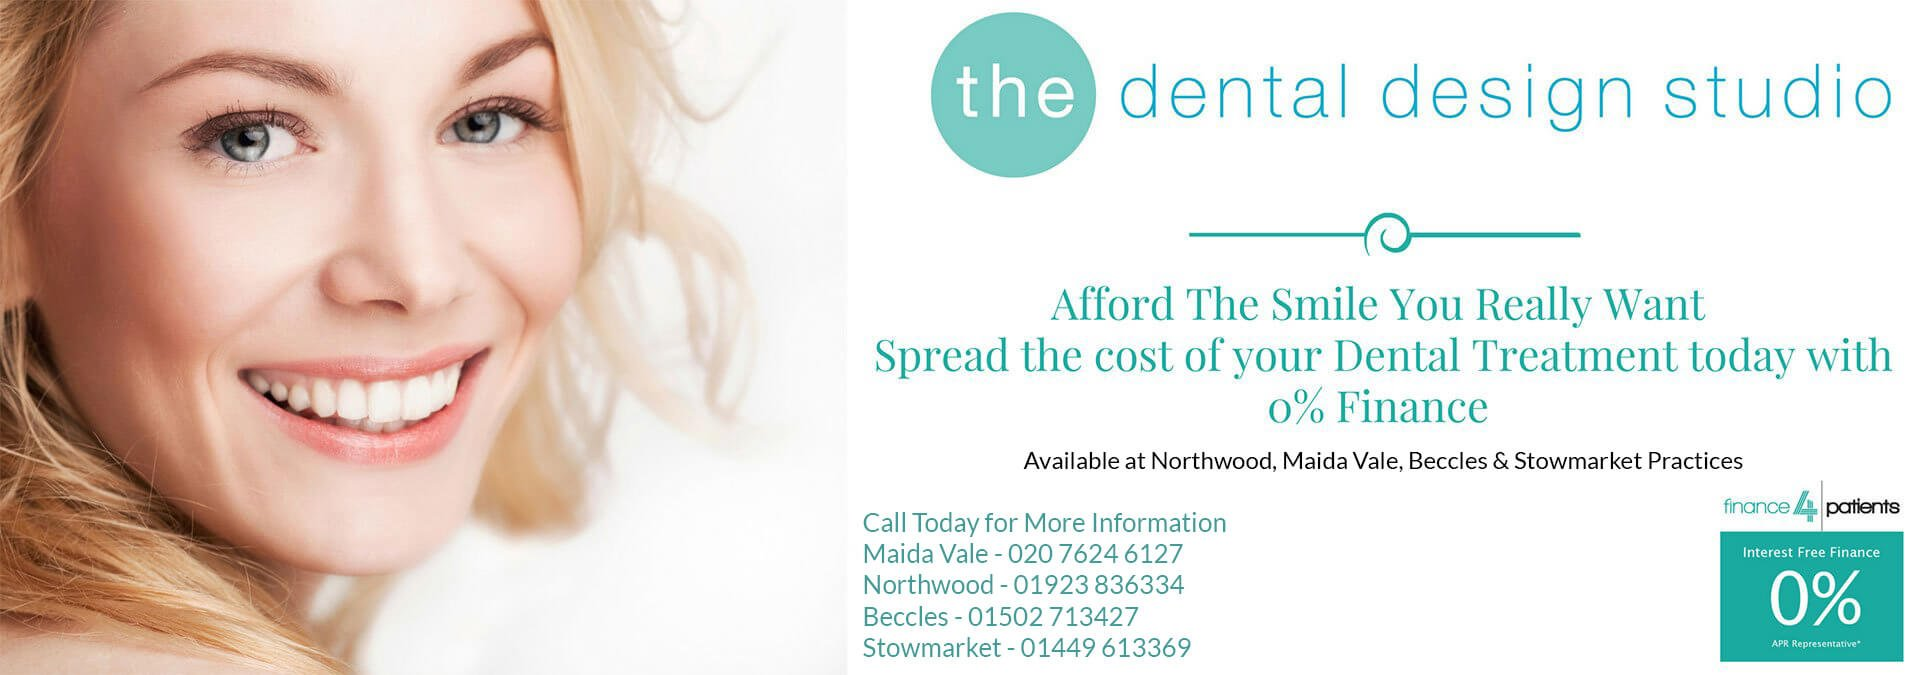 blonde woman smiling on dental design studio banner